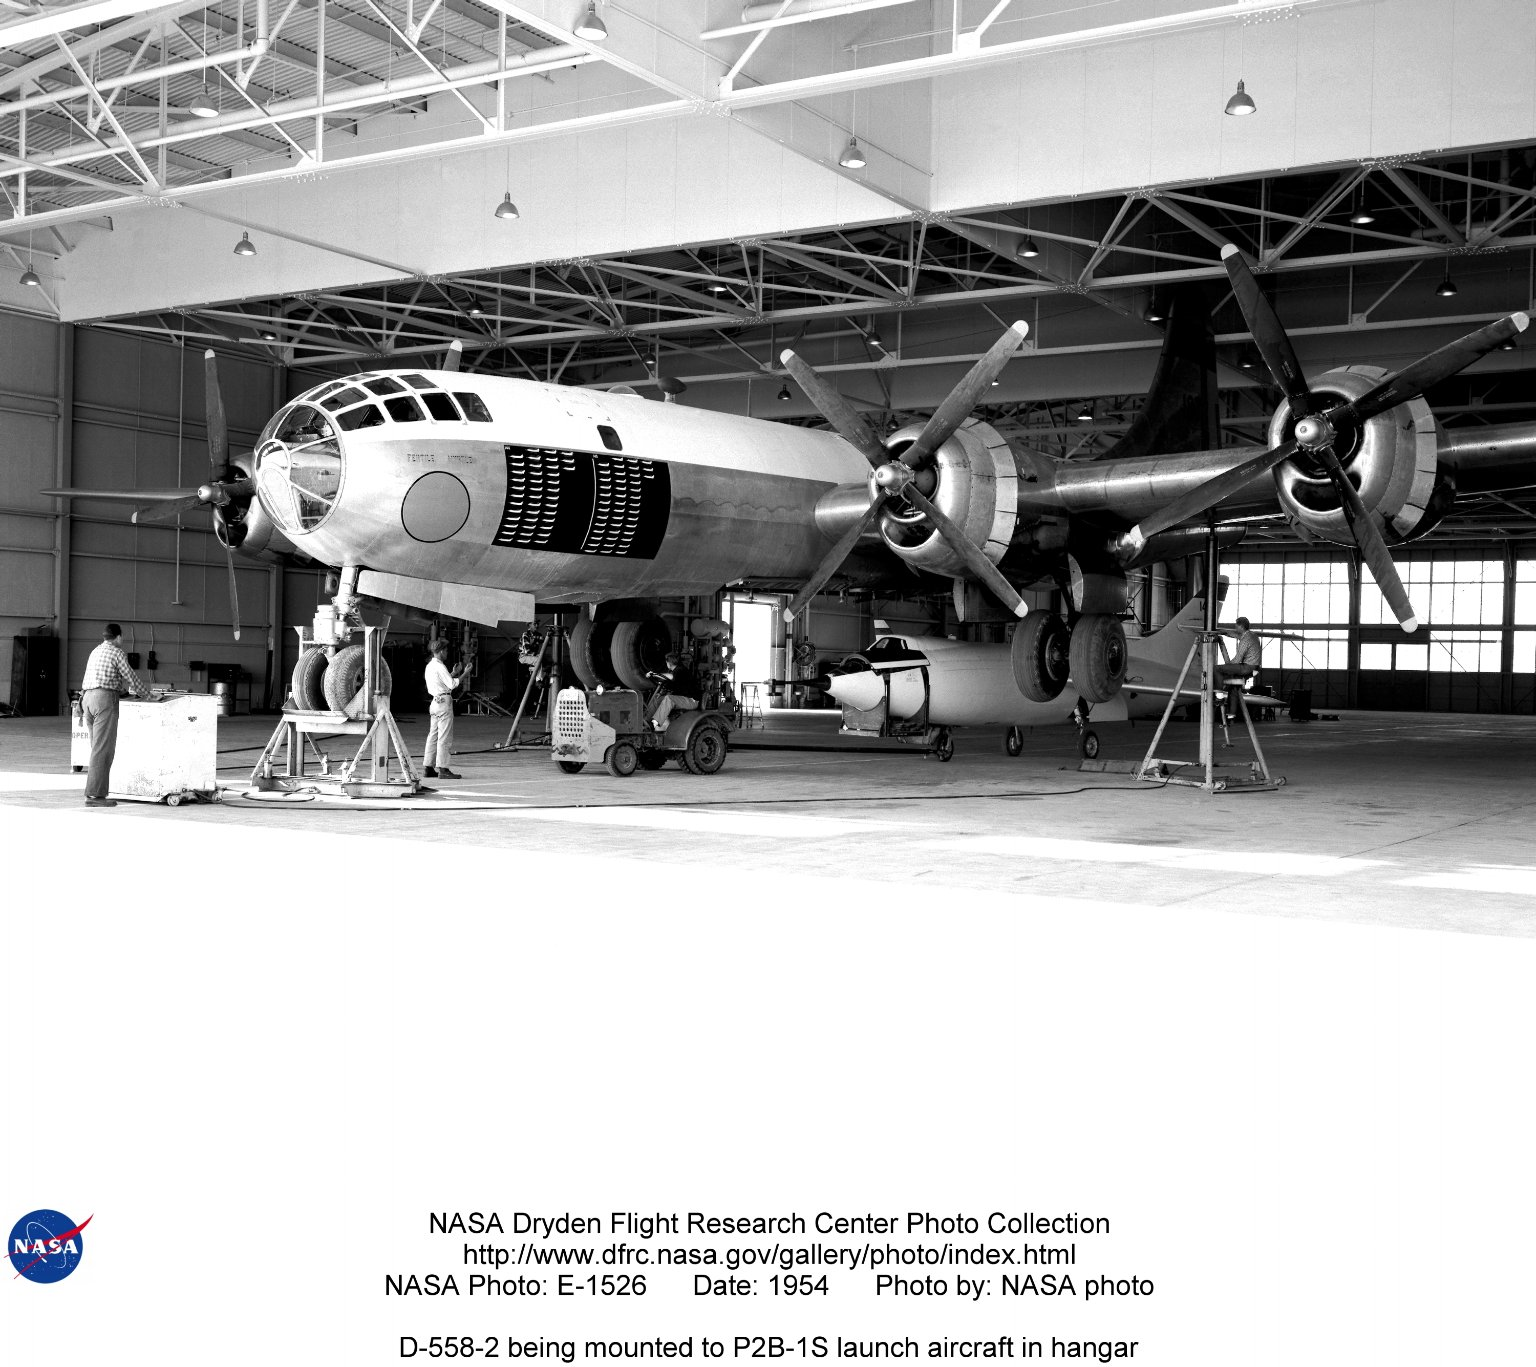 D-558-2 being mounted to P2B-1S launch aircraft in hangar